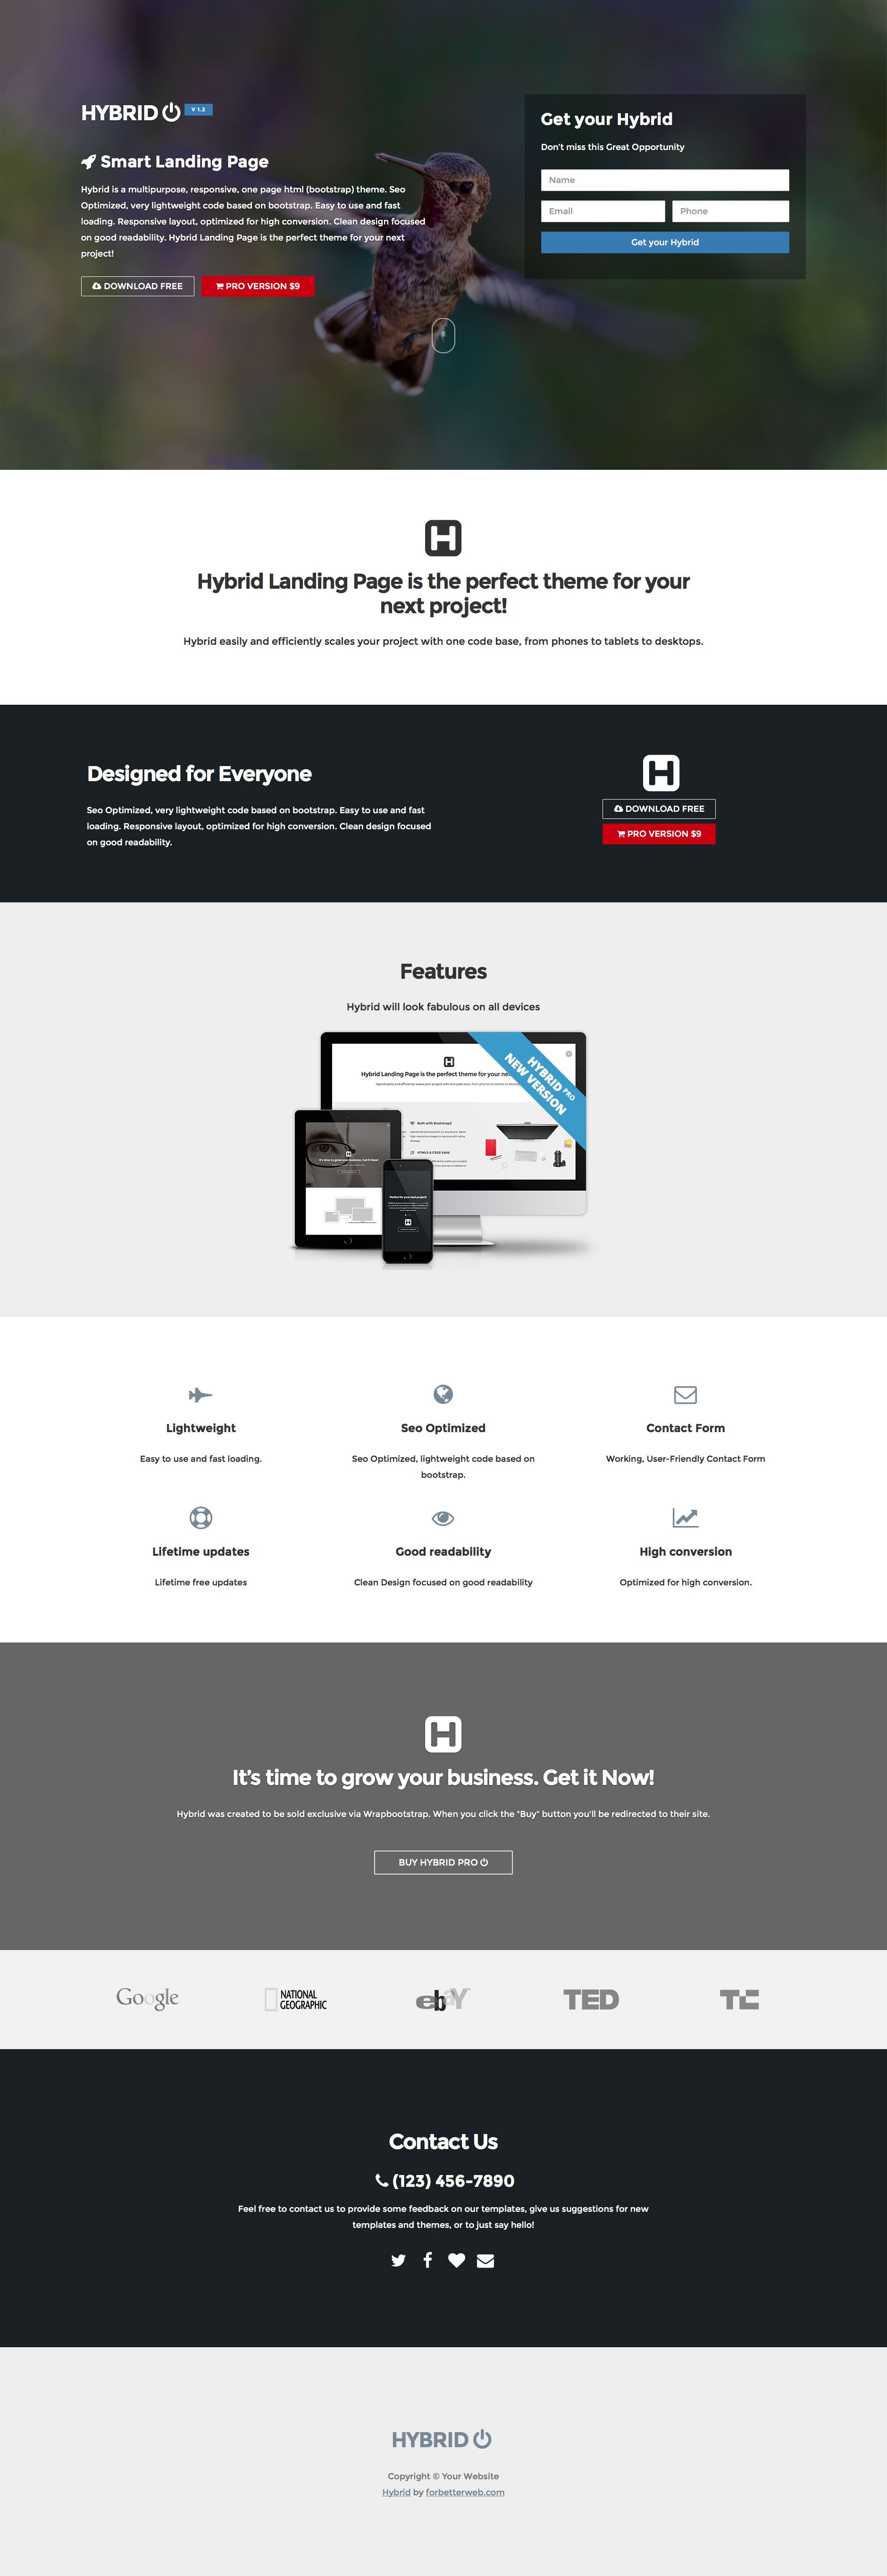 Hybrid is a free, responsive, landing page HTML5 template, designed ...